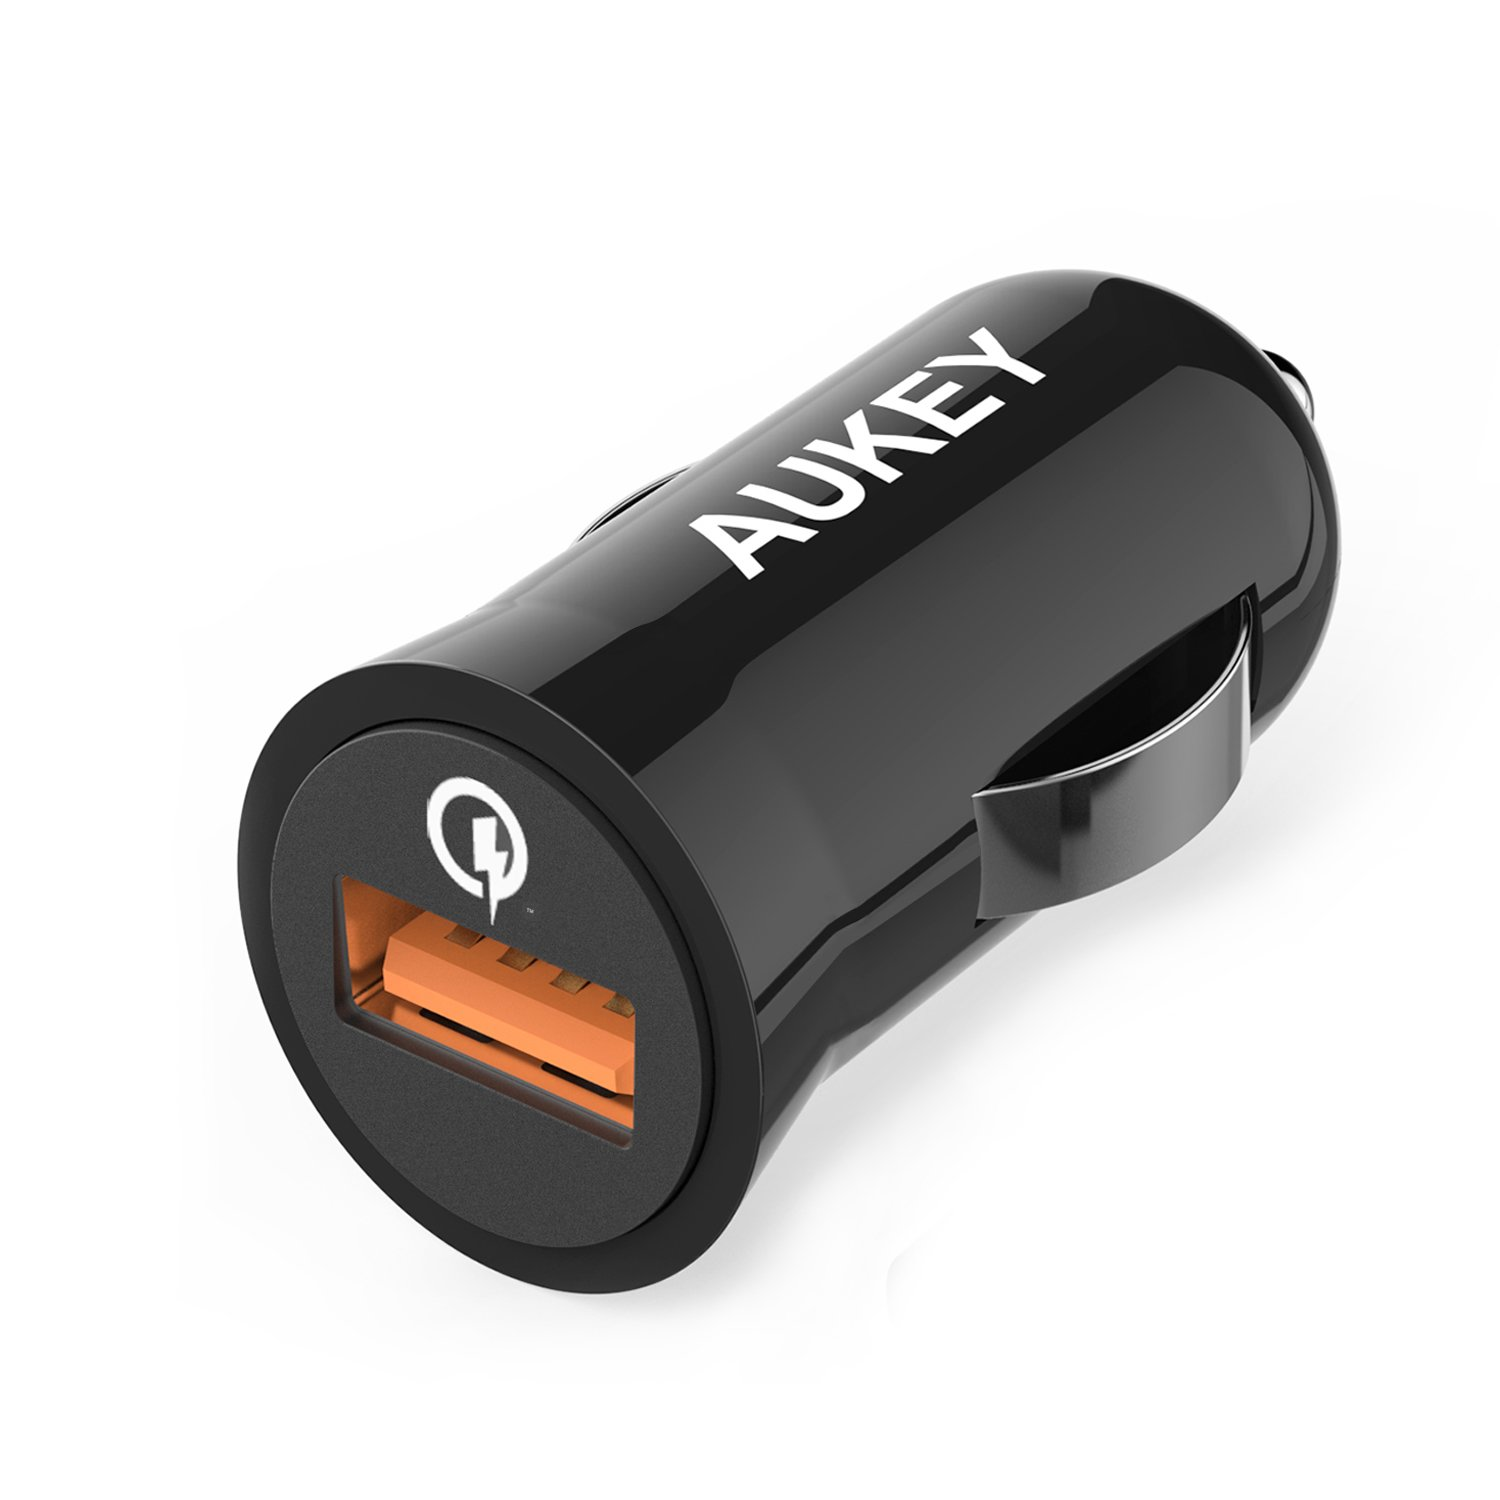 Aukey CC-T5 Quick Charge 2.0 2.4A Car Charger